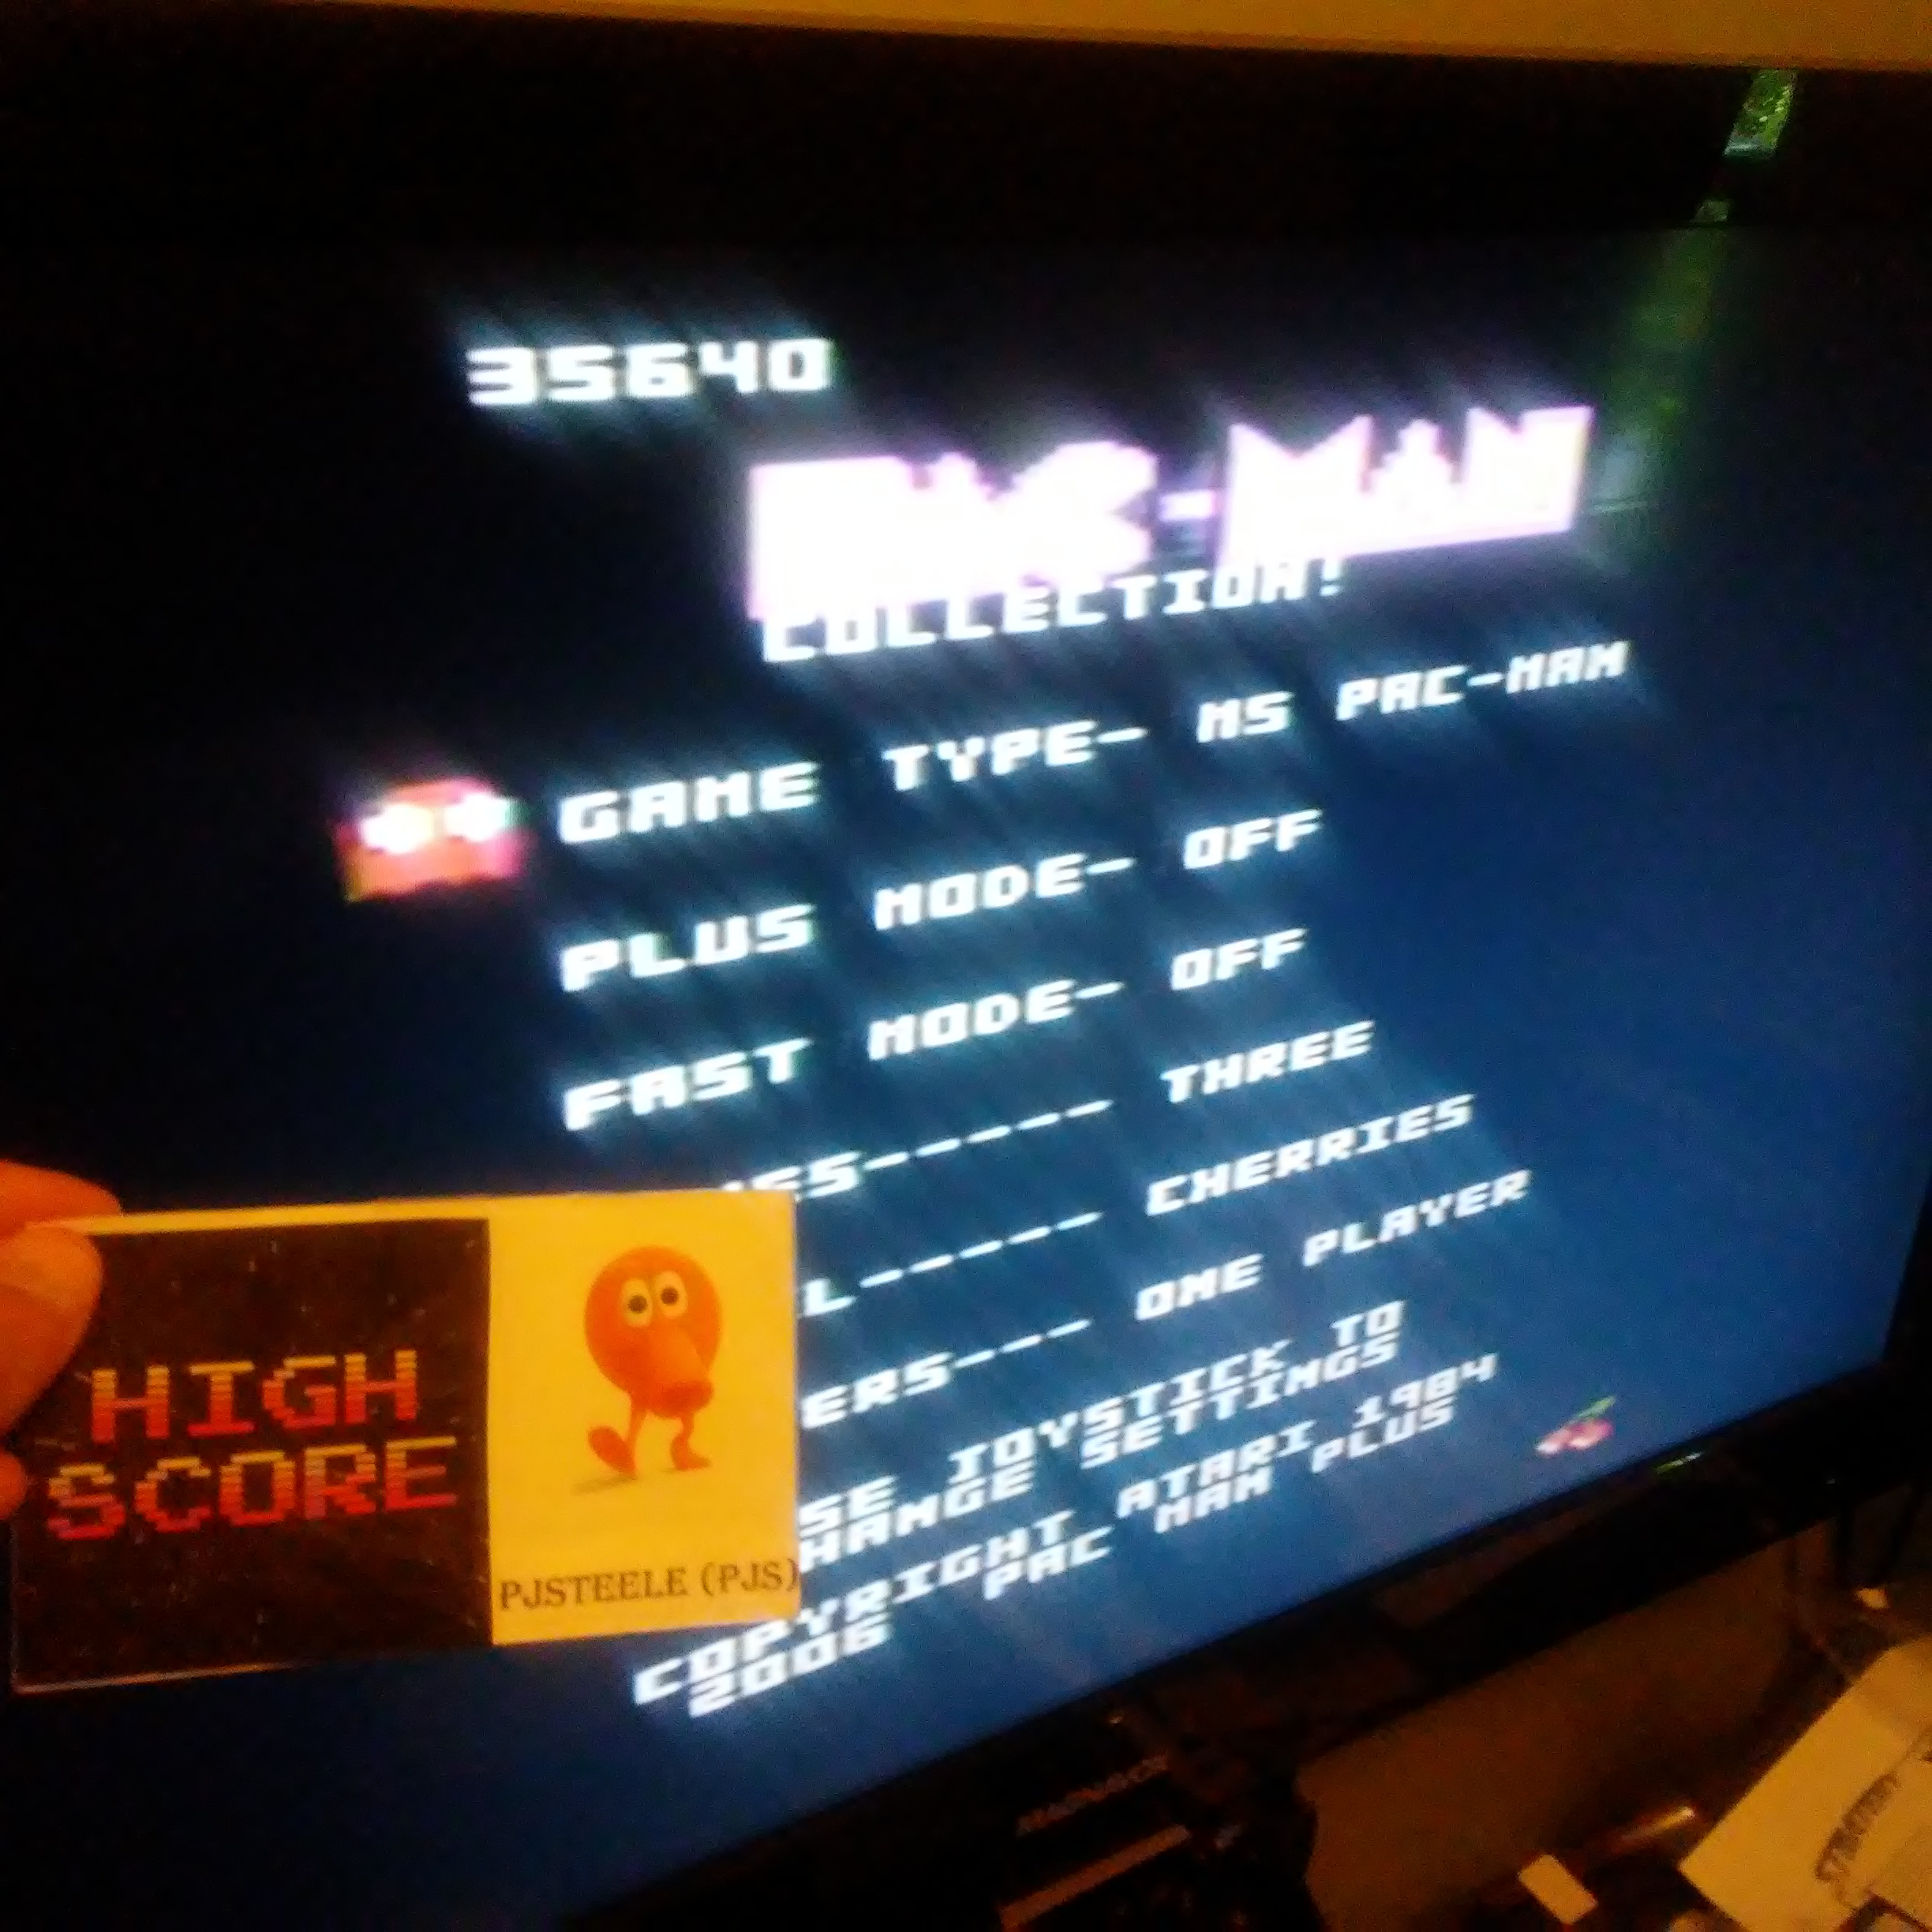 Pjsteele: Pac-Man Collection: Ms. Pac-Man [Cherries/Plus Off/Fast Off] (Atari 7800) 35,640 points on 2018-06-28 14:56:40